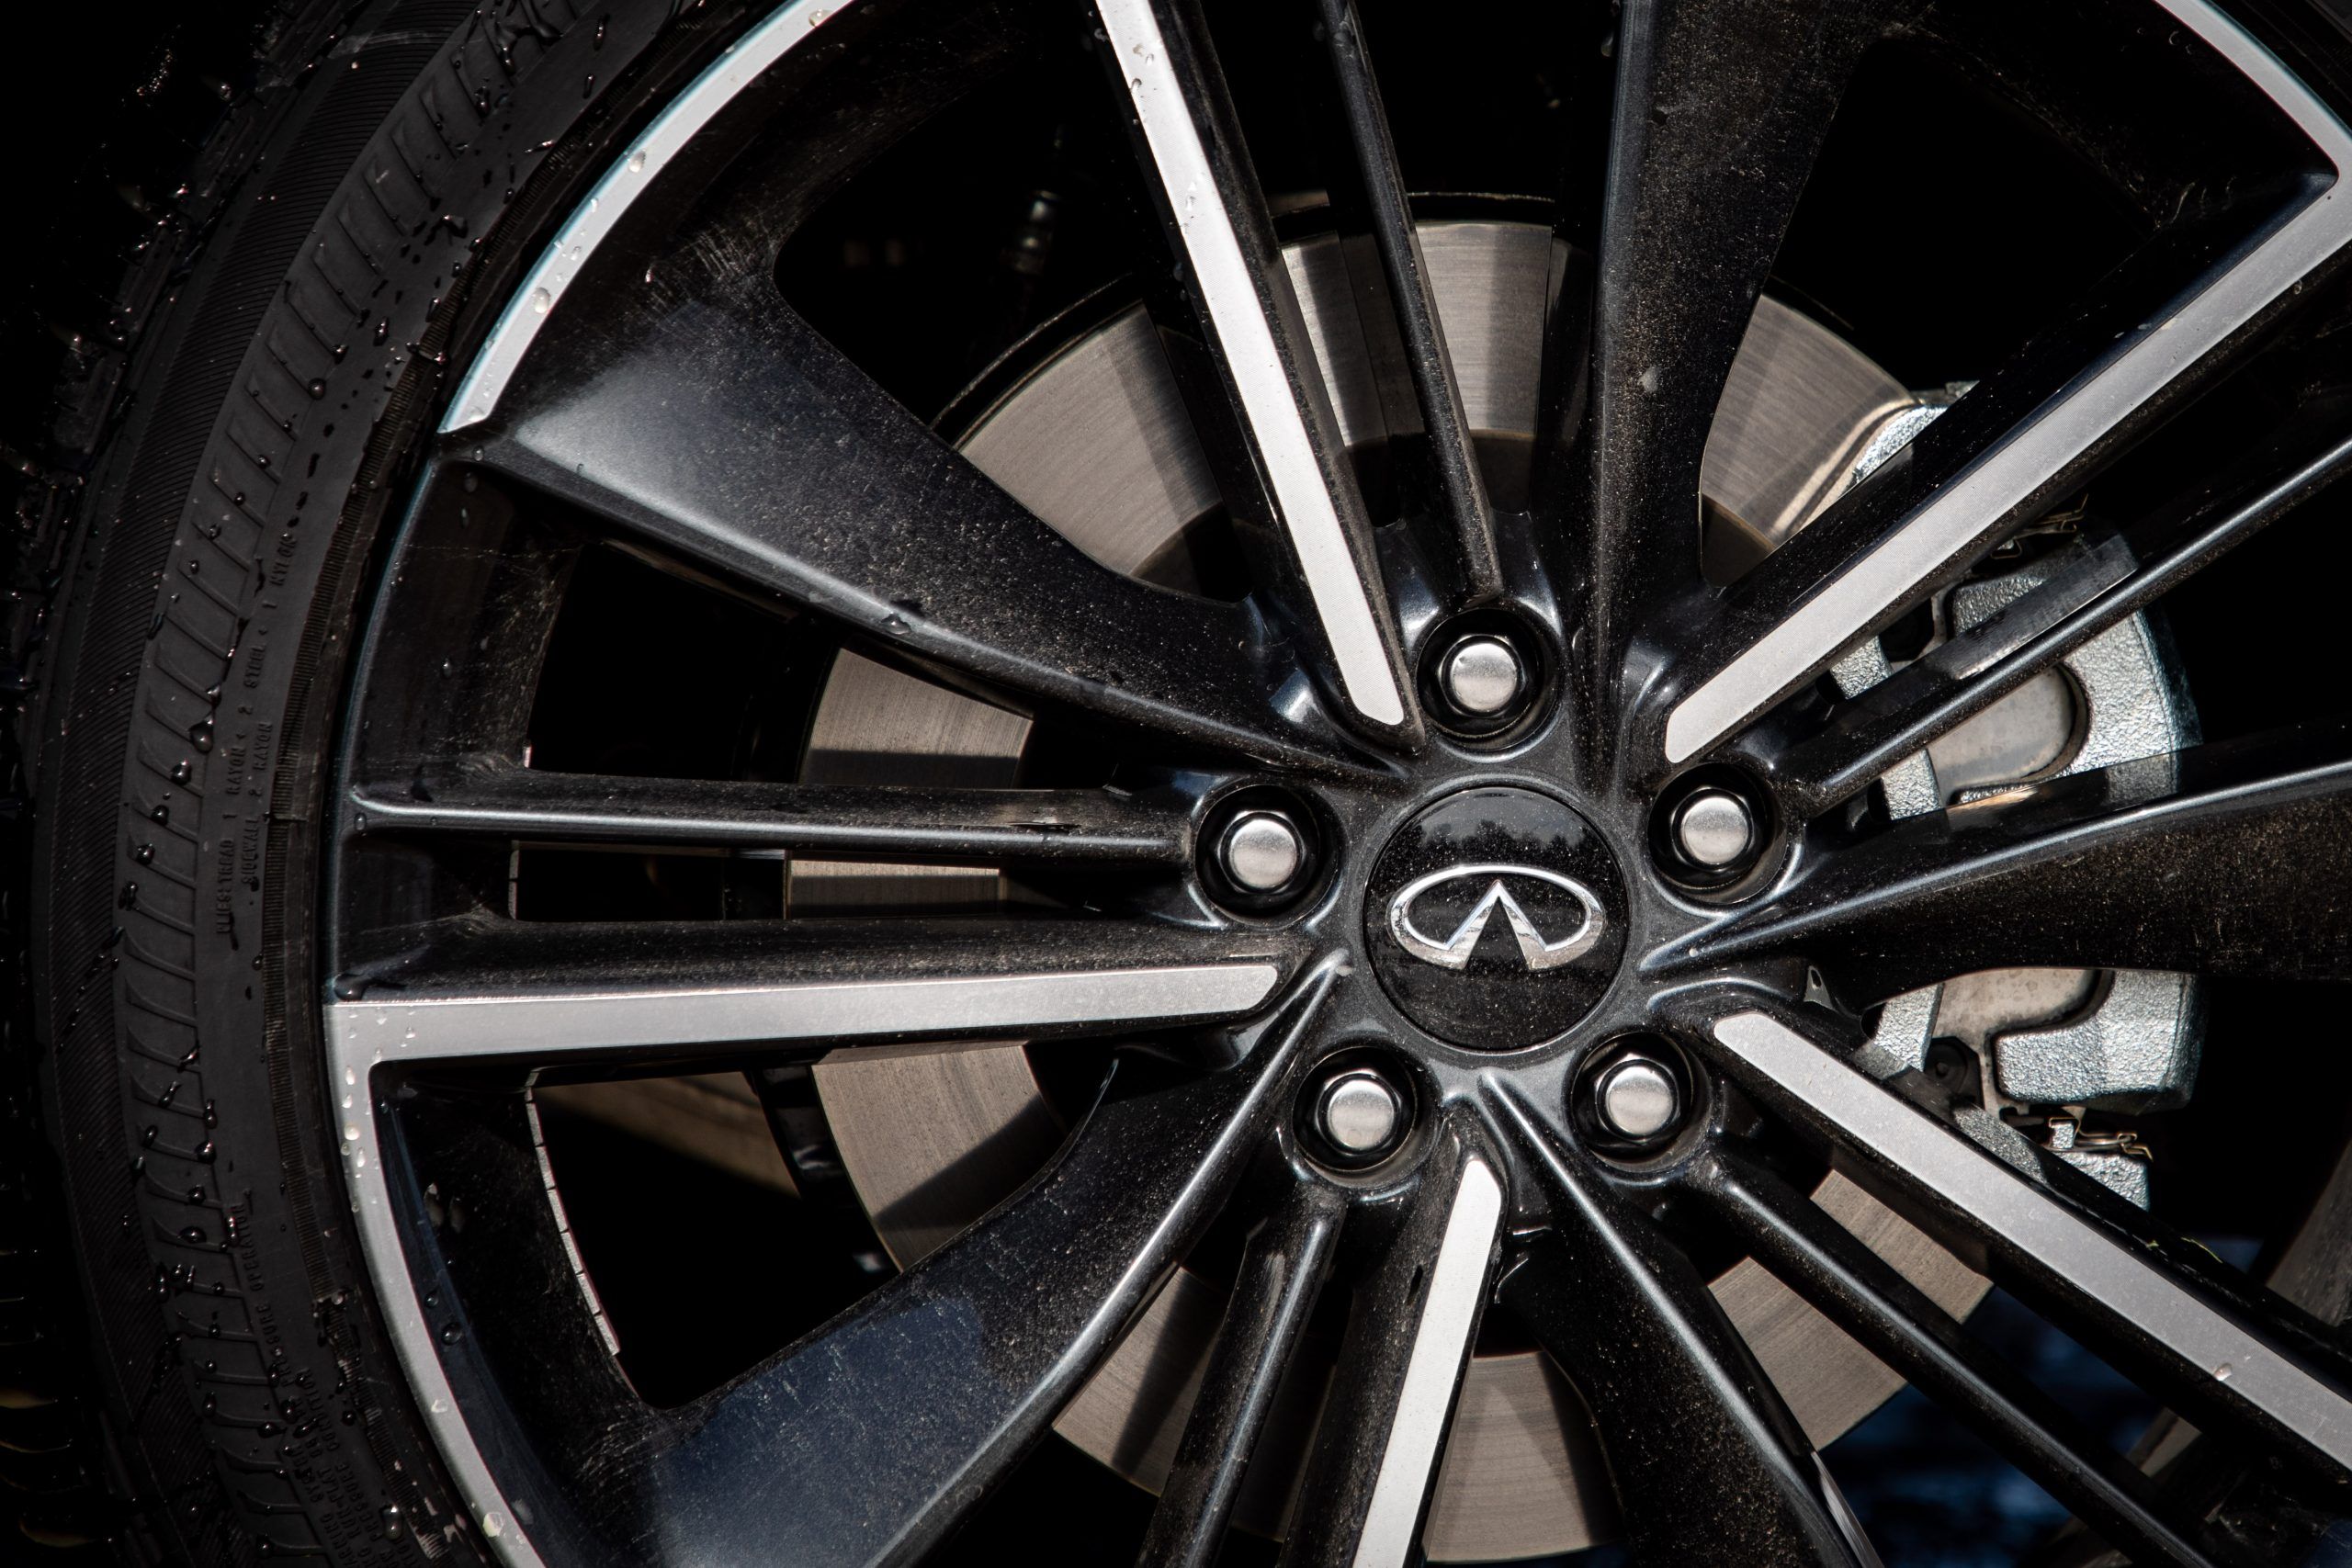 2022 Infiniti QX55 wheel detail